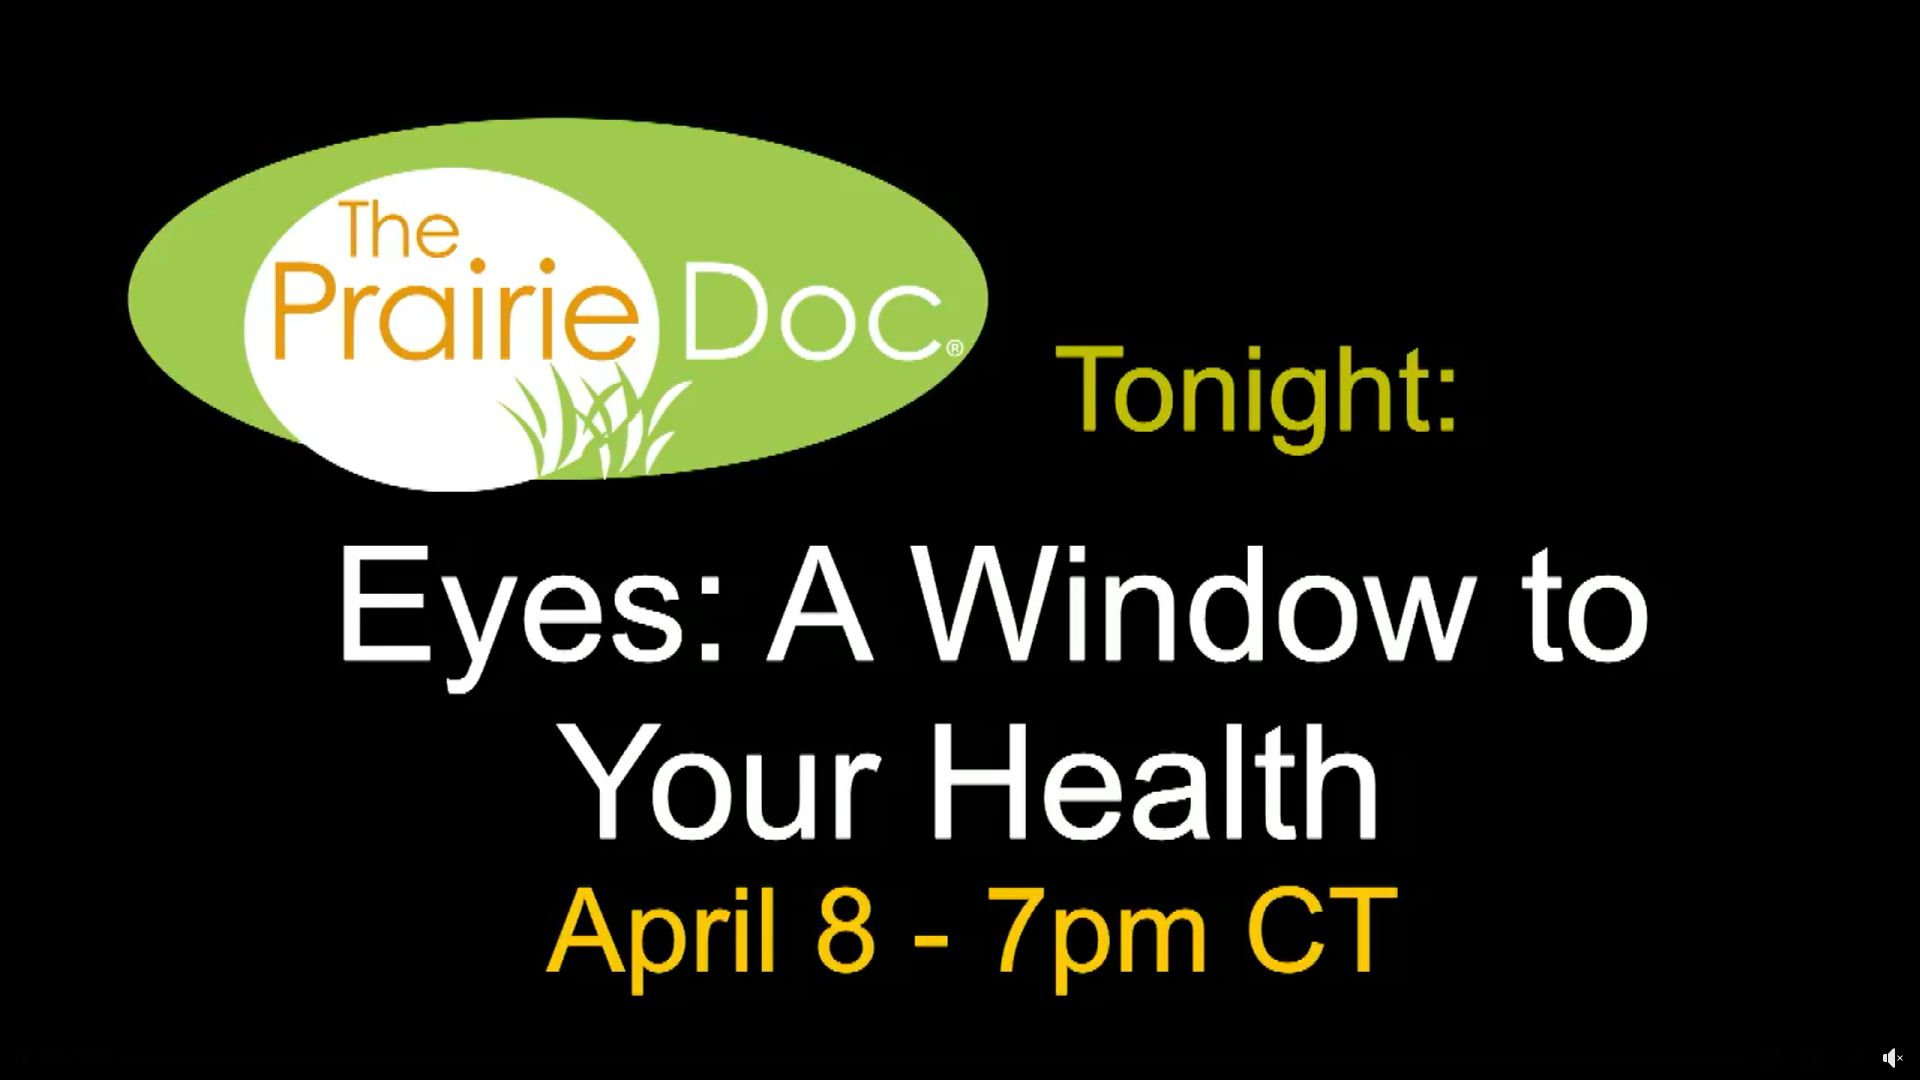 The Prairie Doc - Eyes: A Window to Your Health